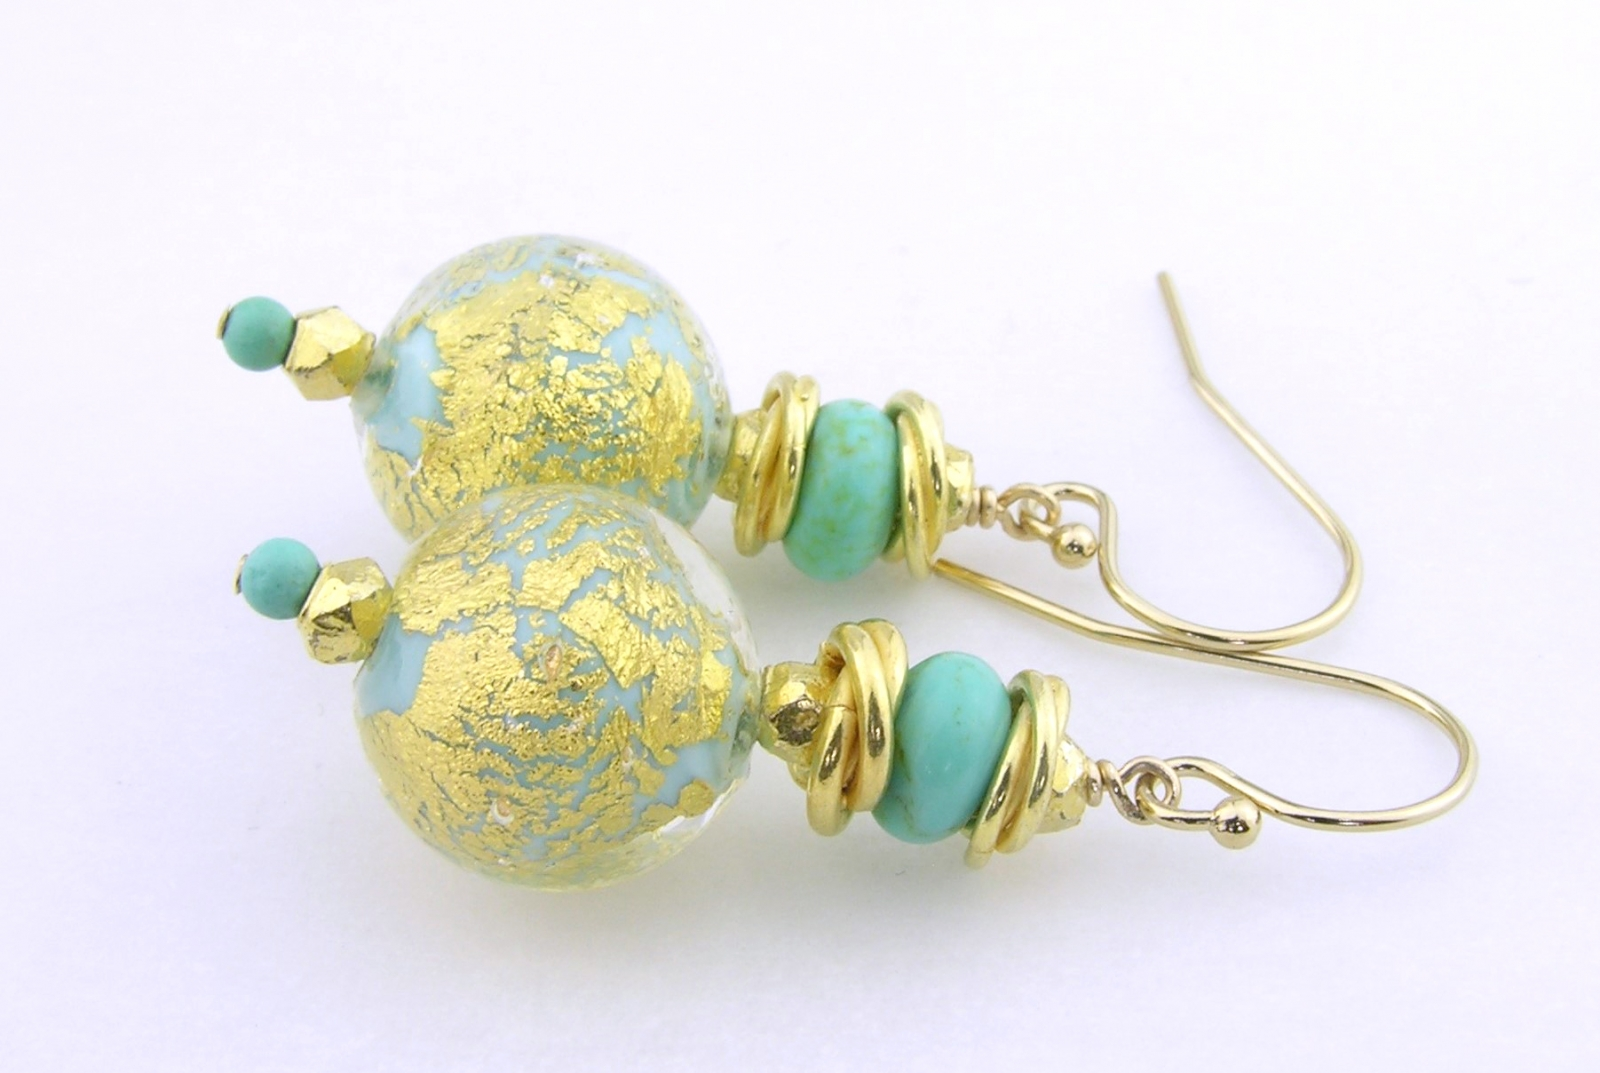 Golden Crackle Earrings - venetian beads with gold leaf, turquoise, gold vermeil and gold fill